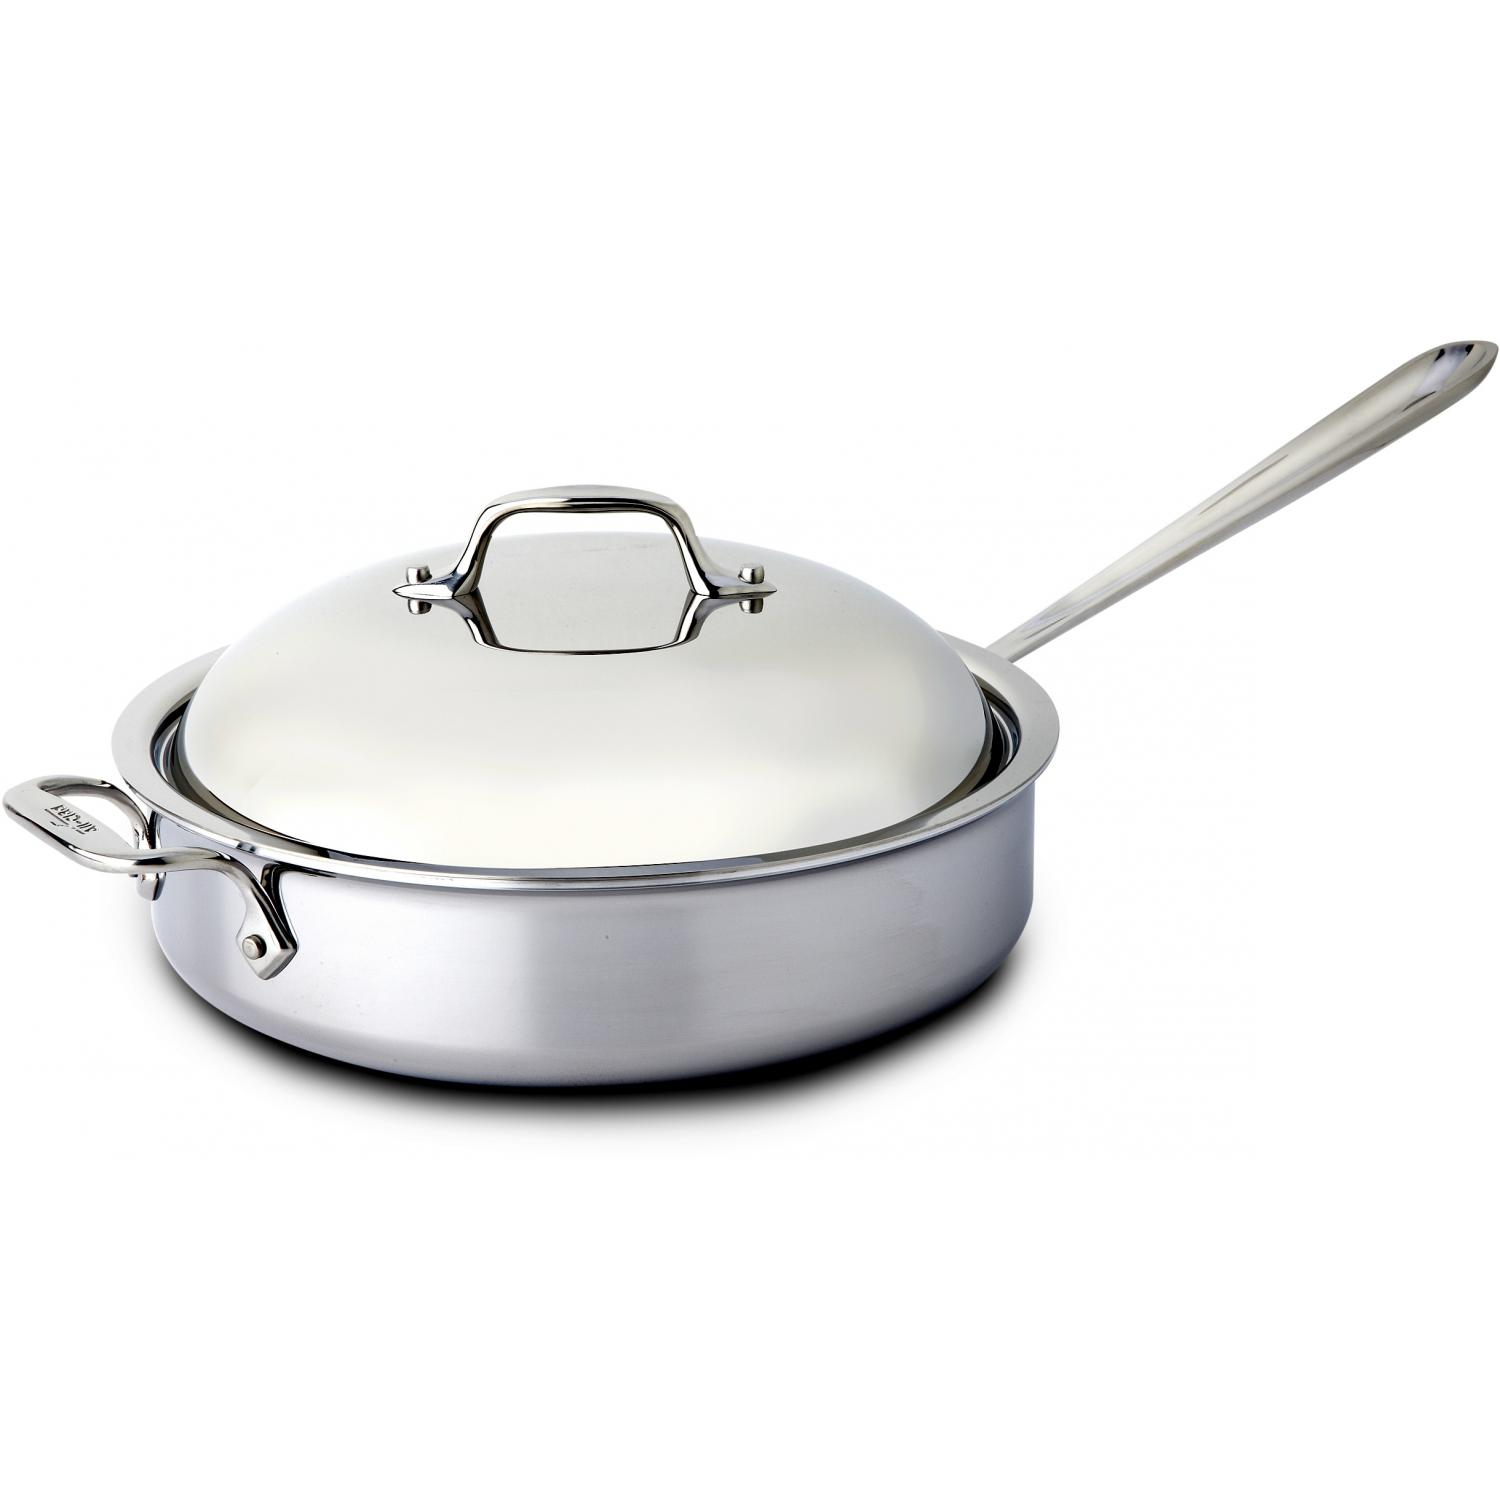 Picture of All-Clad Stainless 4-Quart Saute Pan With Domed Lid